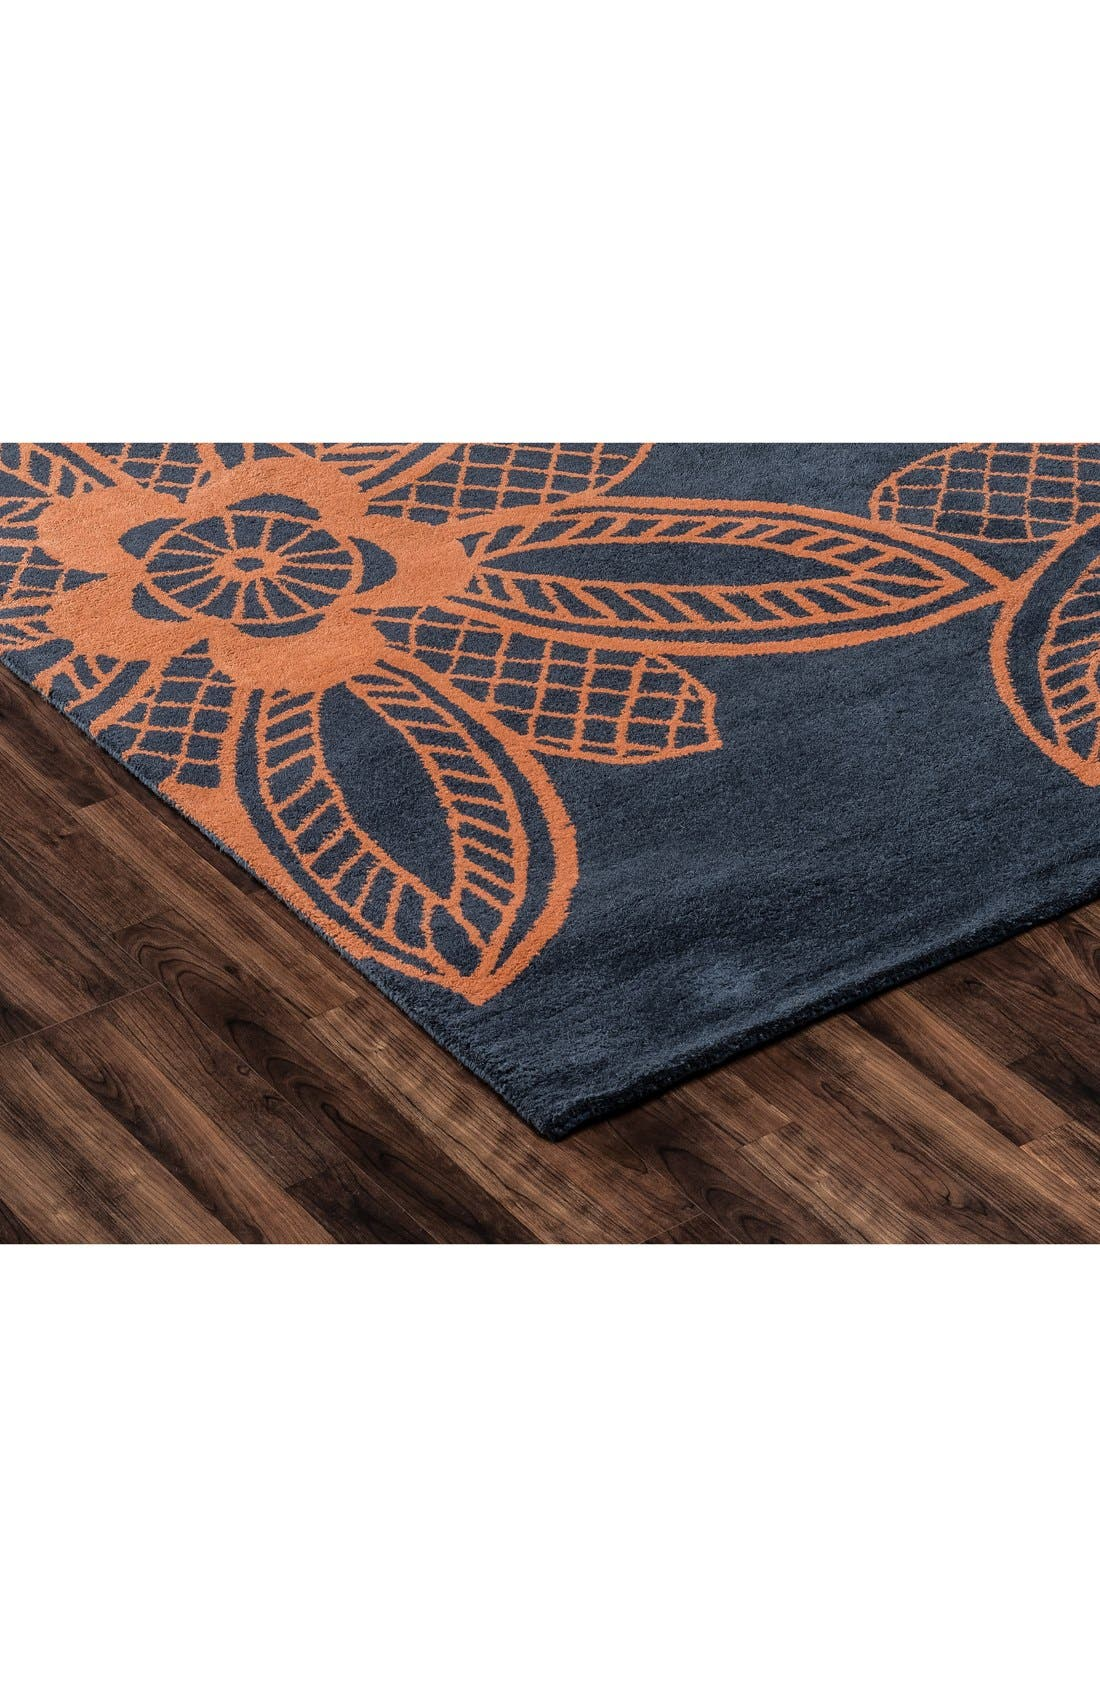 Alternate Image 2  - Rizzy Home 'Lacey Jane' Hand Tufted Wool Area Rug